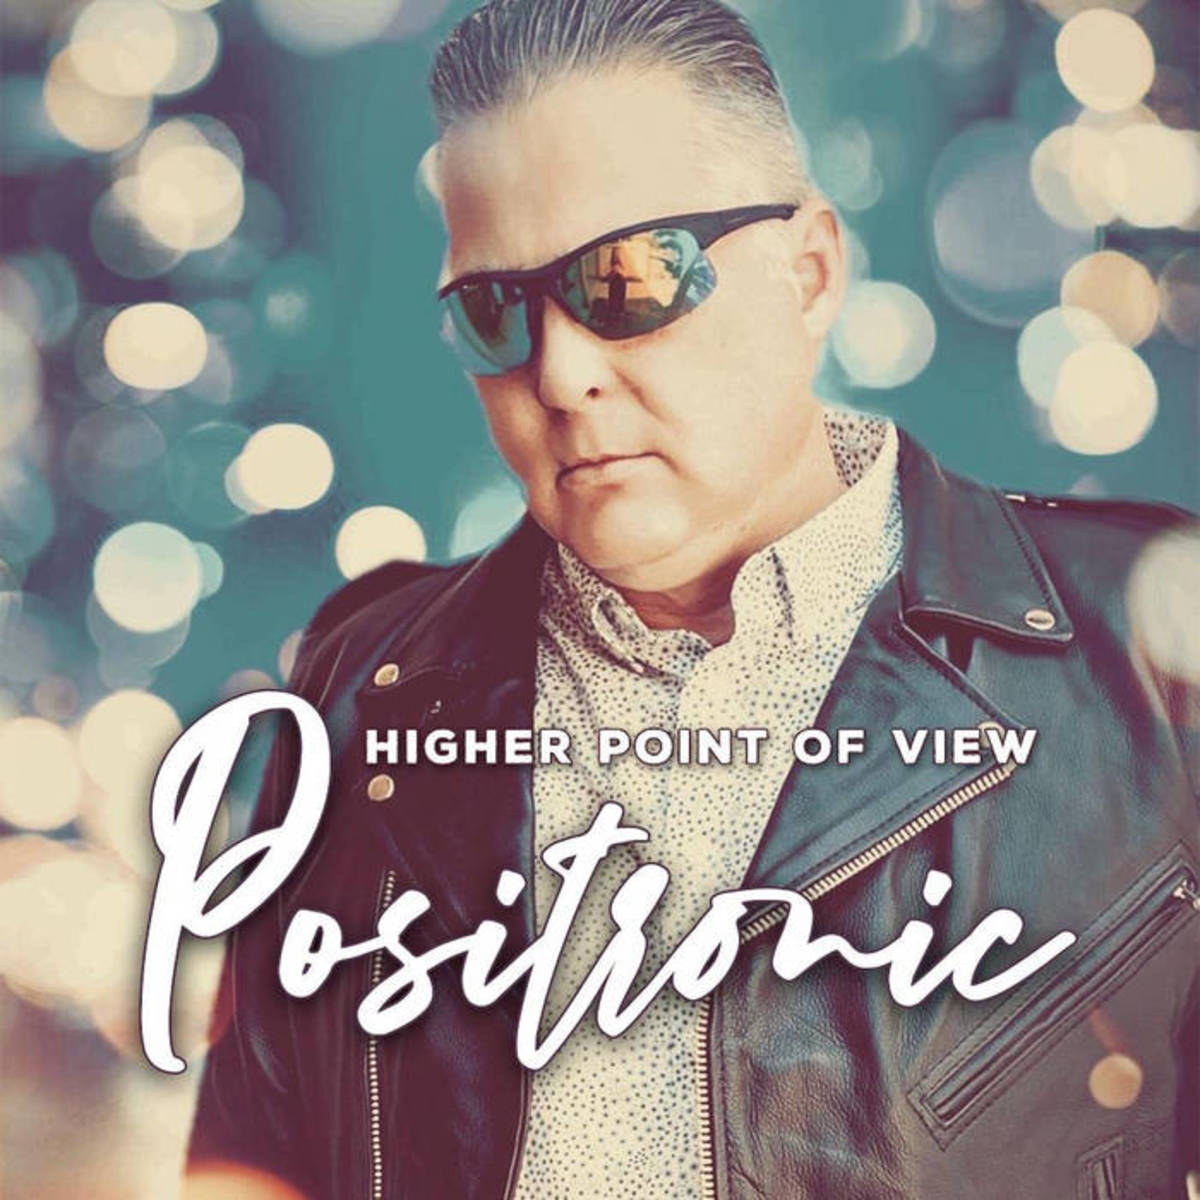 synth-ep-review-higher-point-of-view-remixes-by-positronic-and-guests